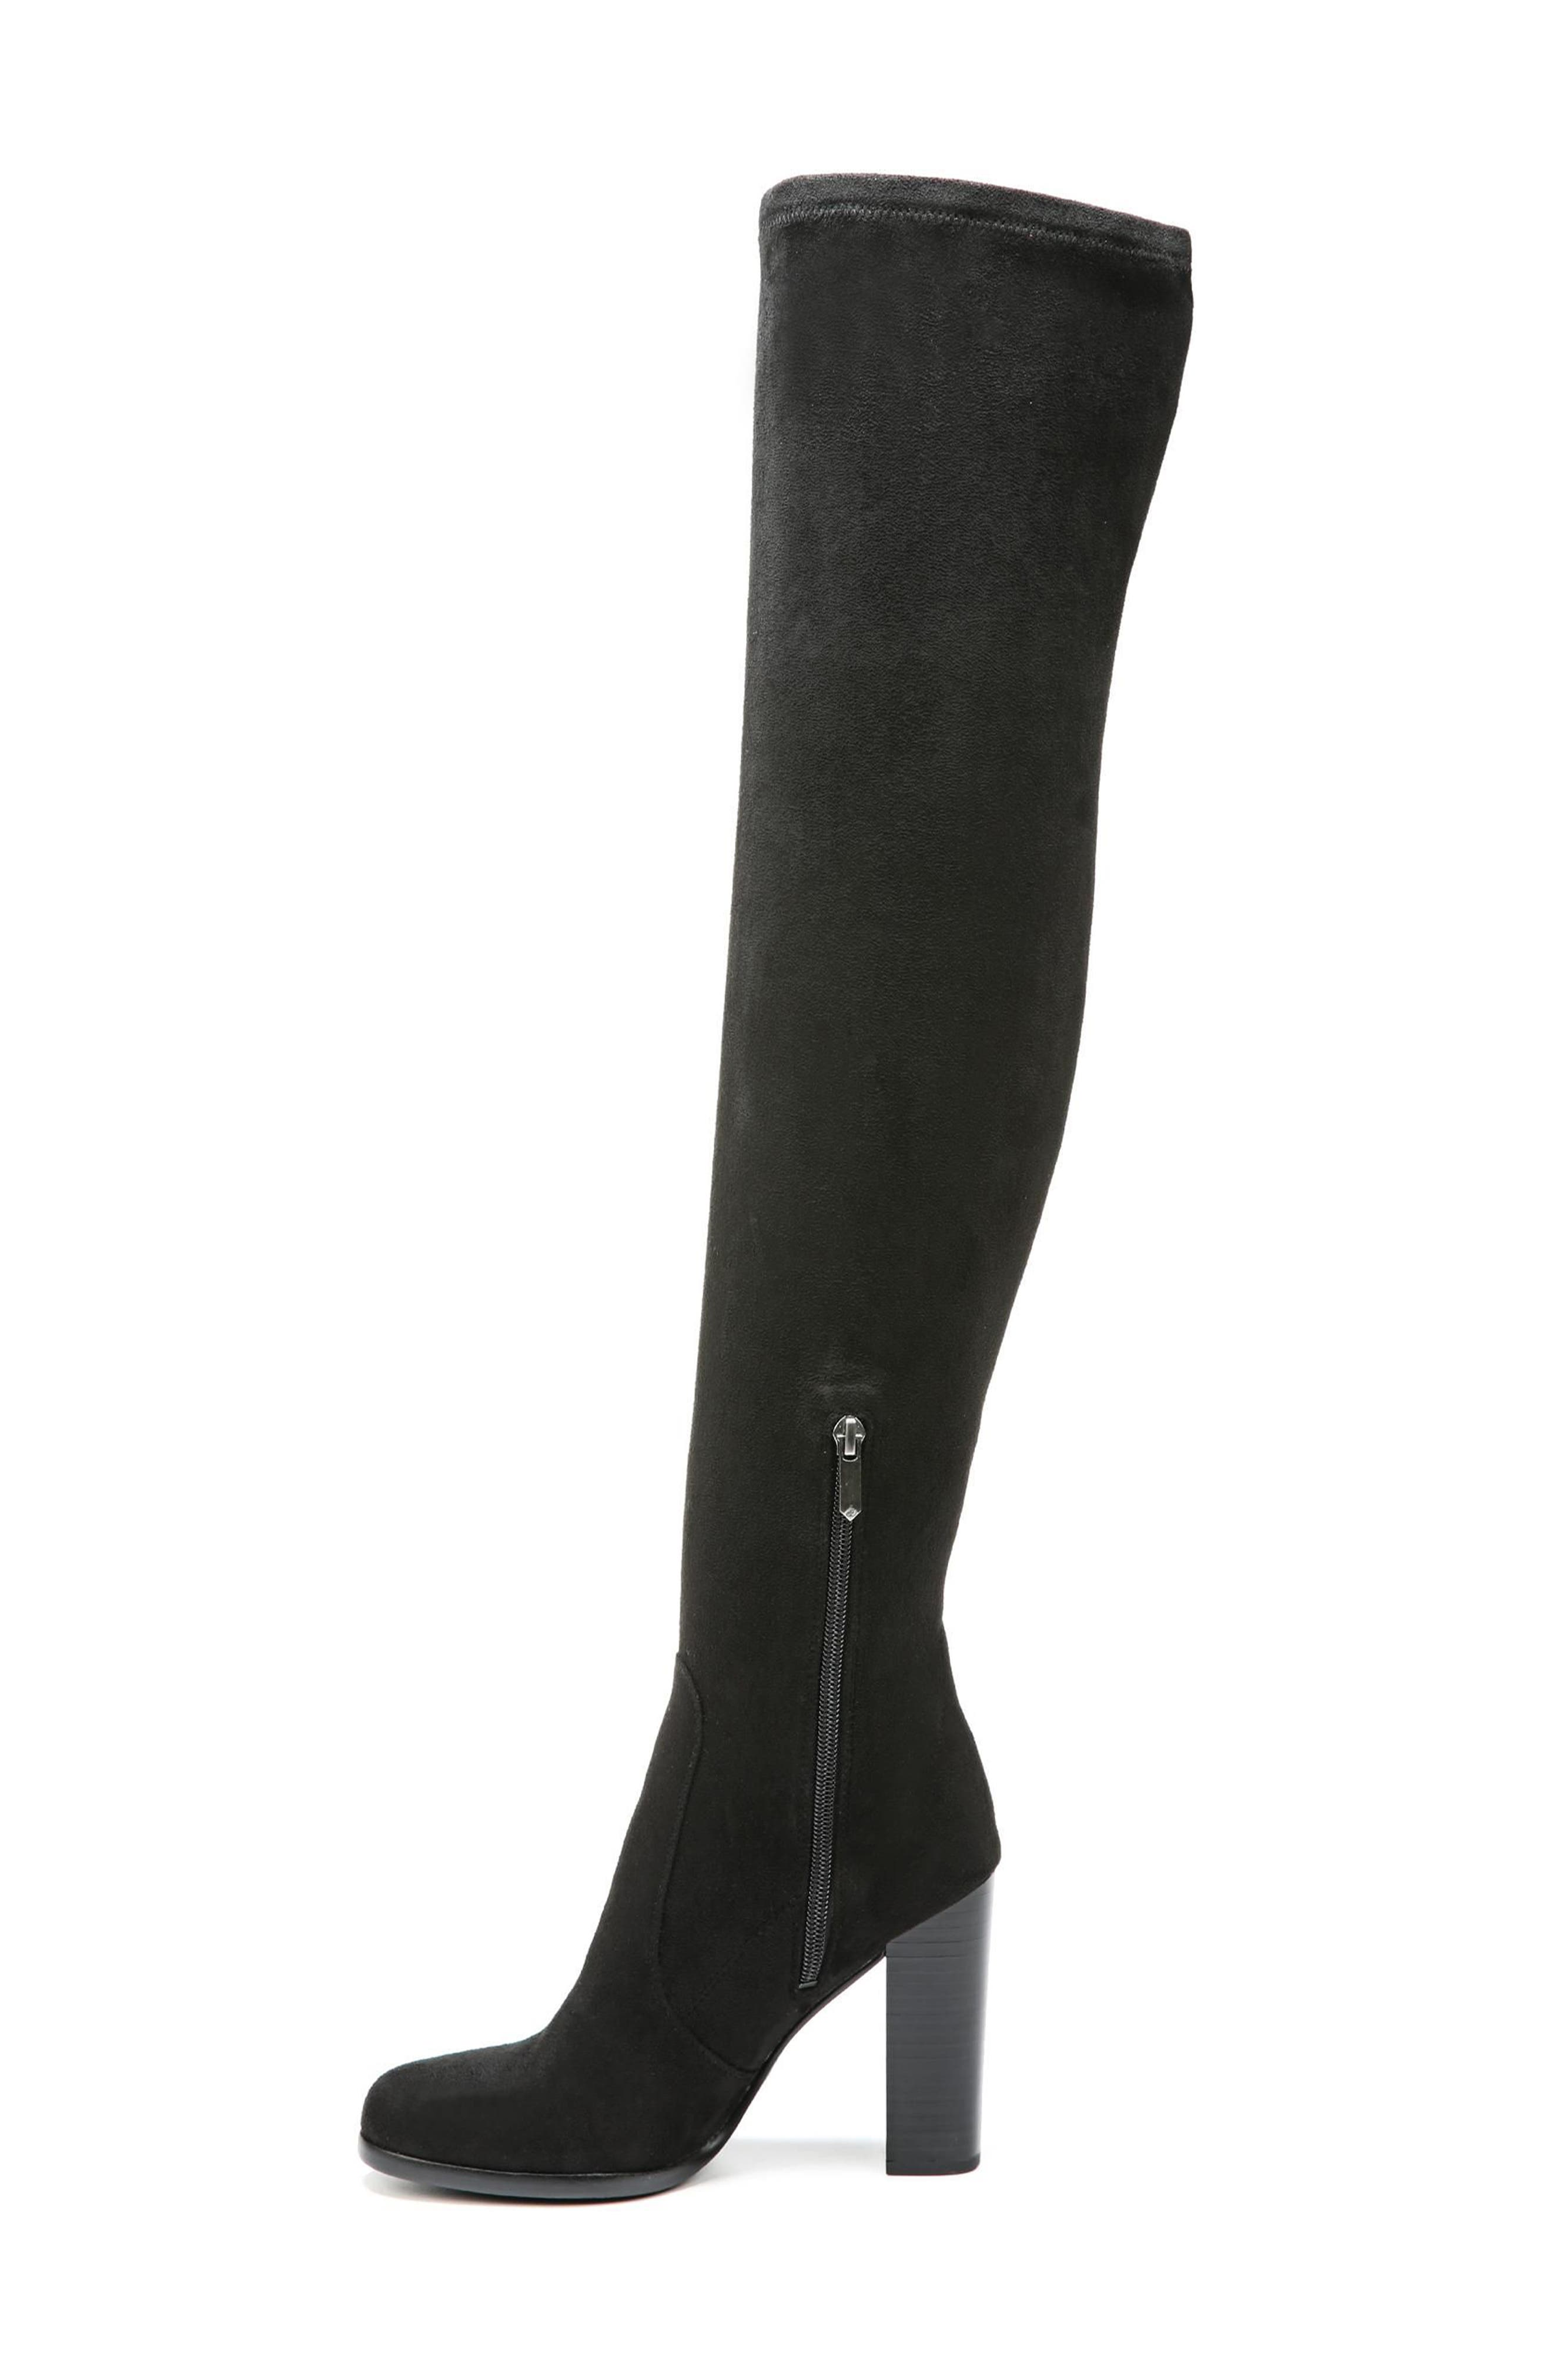 Vena 2 Over the Knee Boot,                             Alternate thumbnail 3, color,                             002